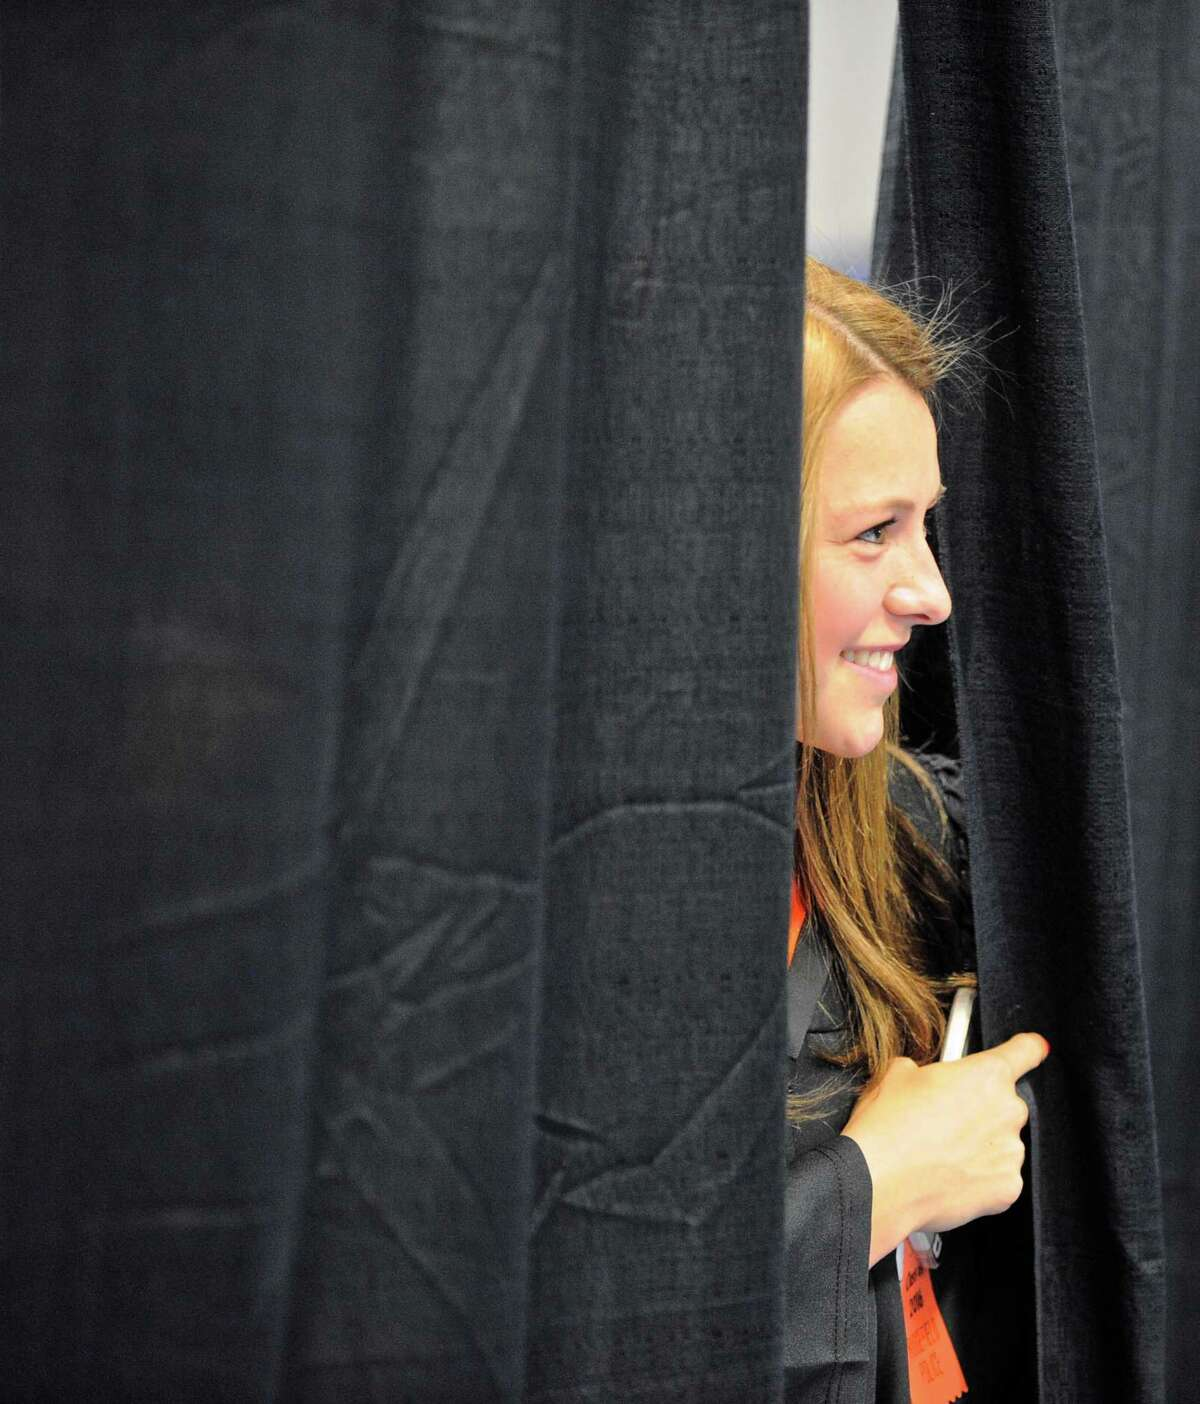 Kimberly Fessenden Weinstock peeks through a curtain looking for her parents as she waits for the Ridgefield High School 2016 Commencement Exercise to begin, Friday, June 17, 2016, at the O'Neill Center, Western Connecticut State University, Danbury, Conn.